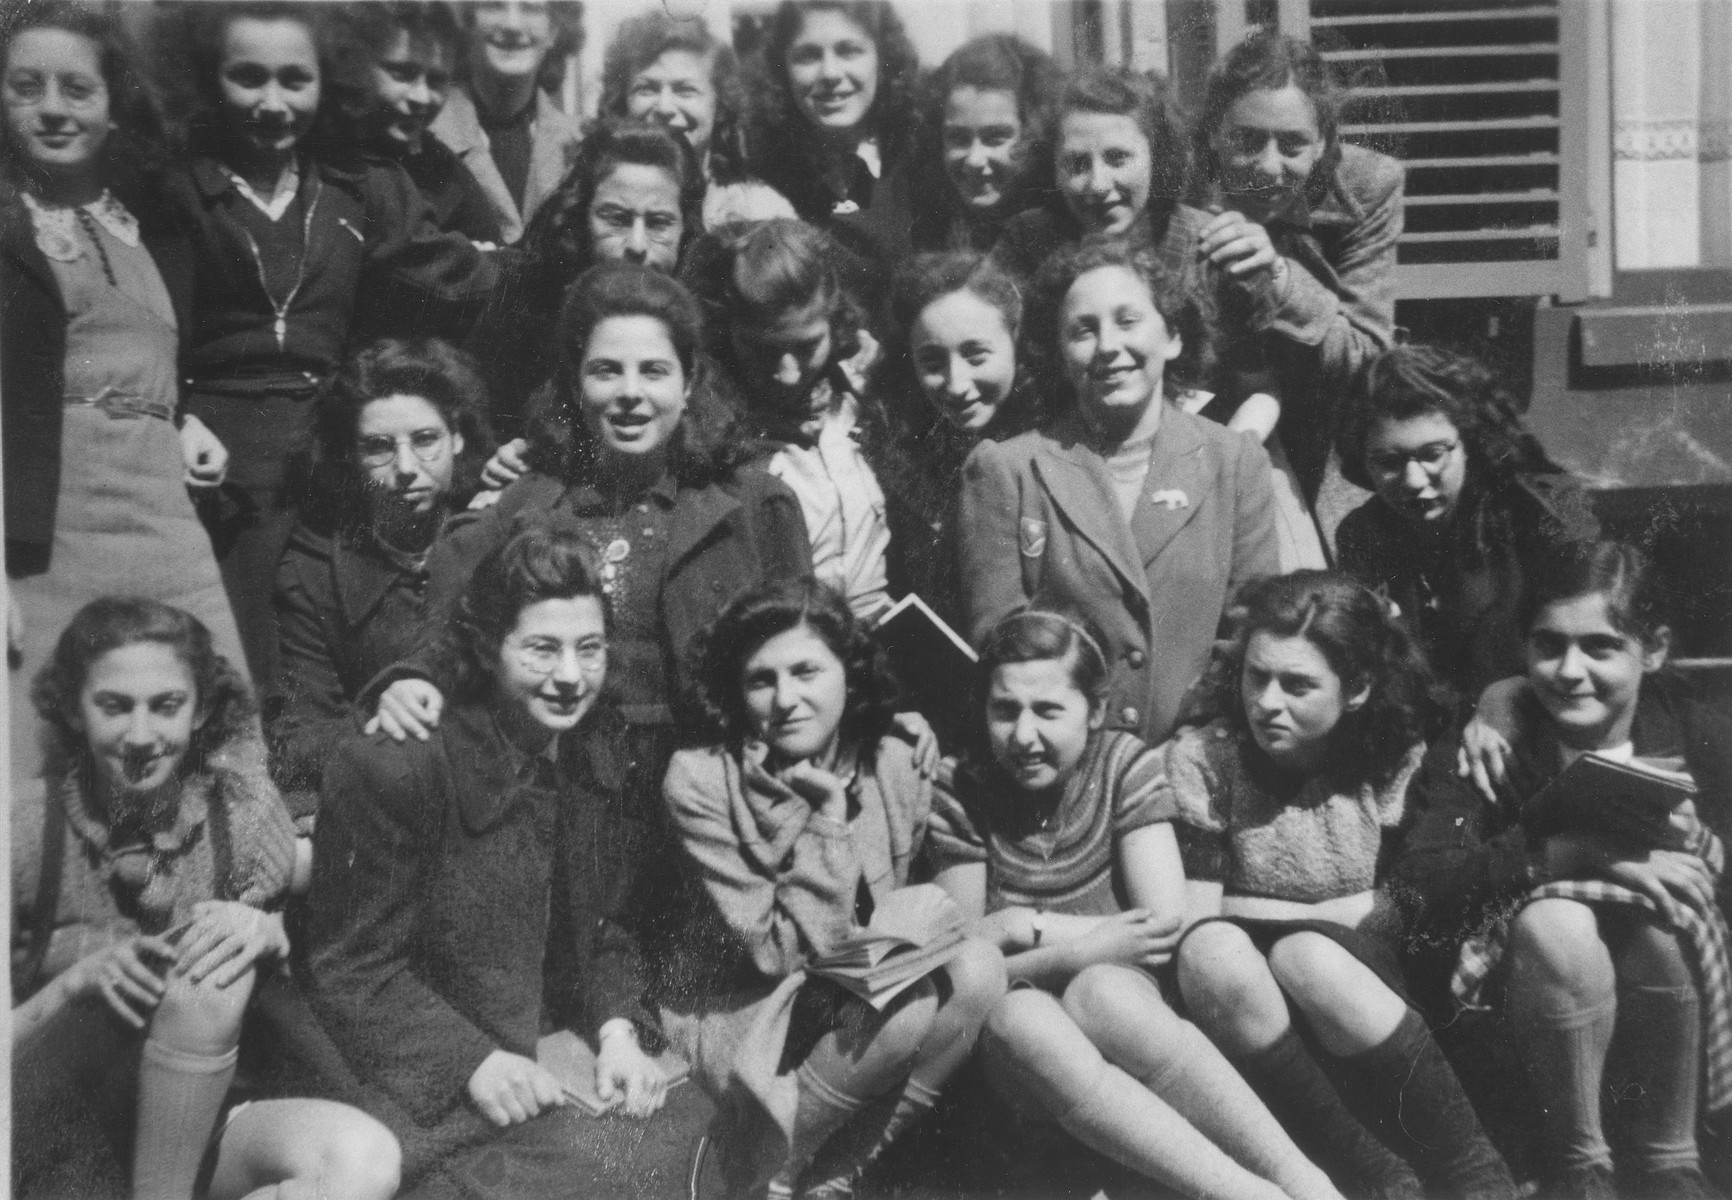 Group portrait of female students in the Jewish school of Zwolle.  Doris Bloch is pictured in the front row at the far right.